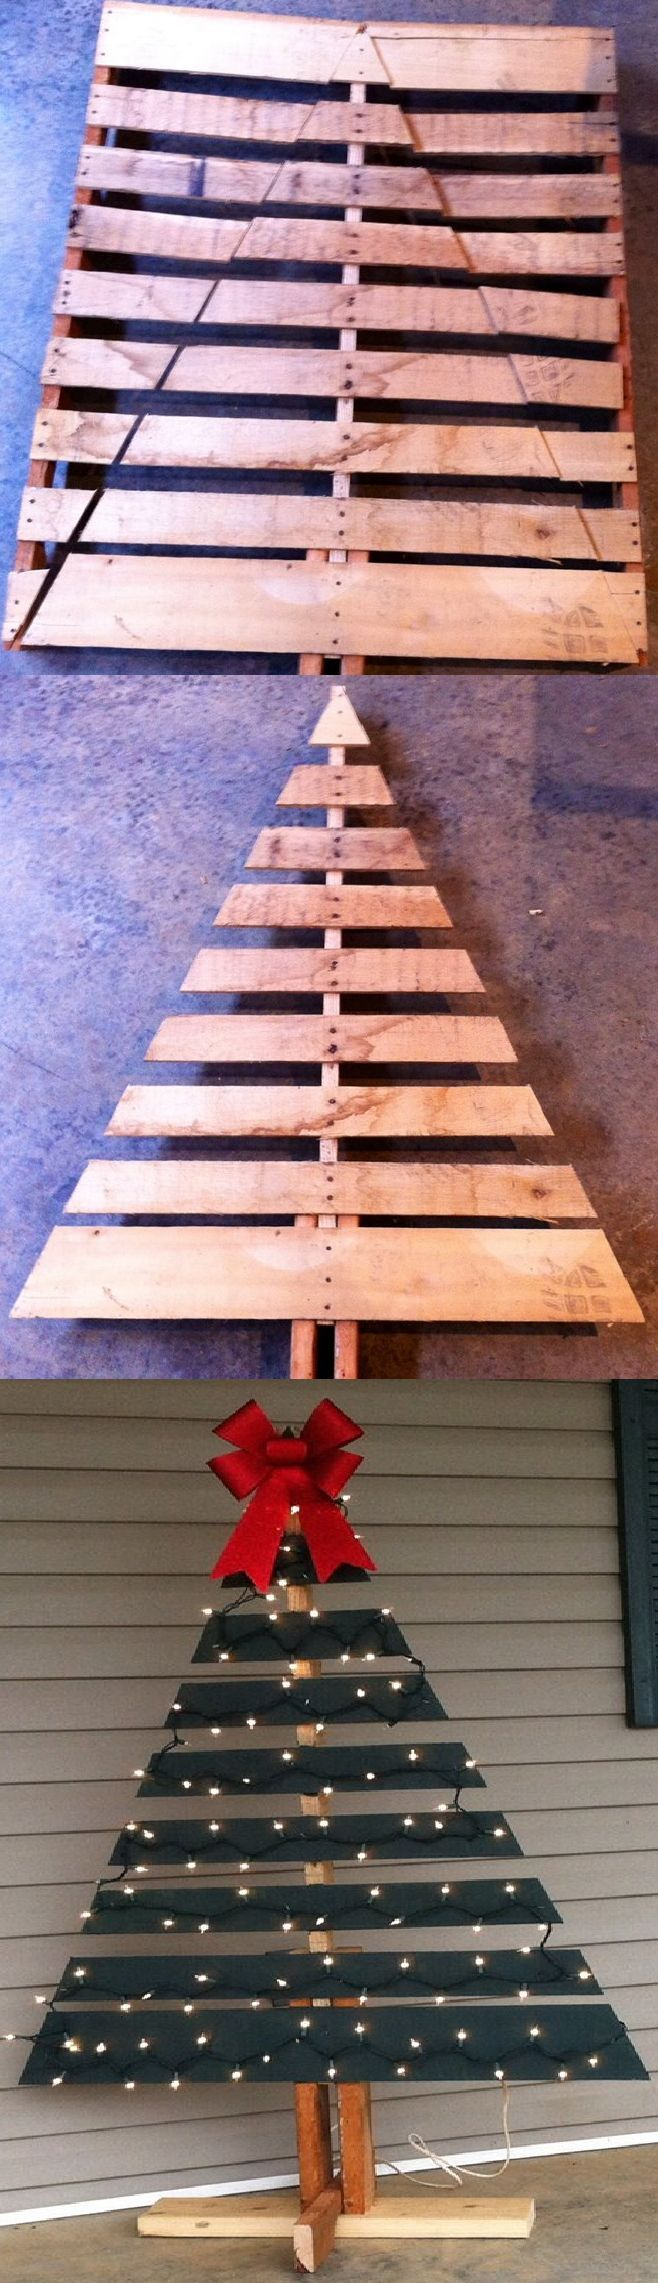 DIY Christmas Tree for your front porch out of a pallet! You could even put a burlap bag around the bottom to cover the base/cords...or use a tree skirt!